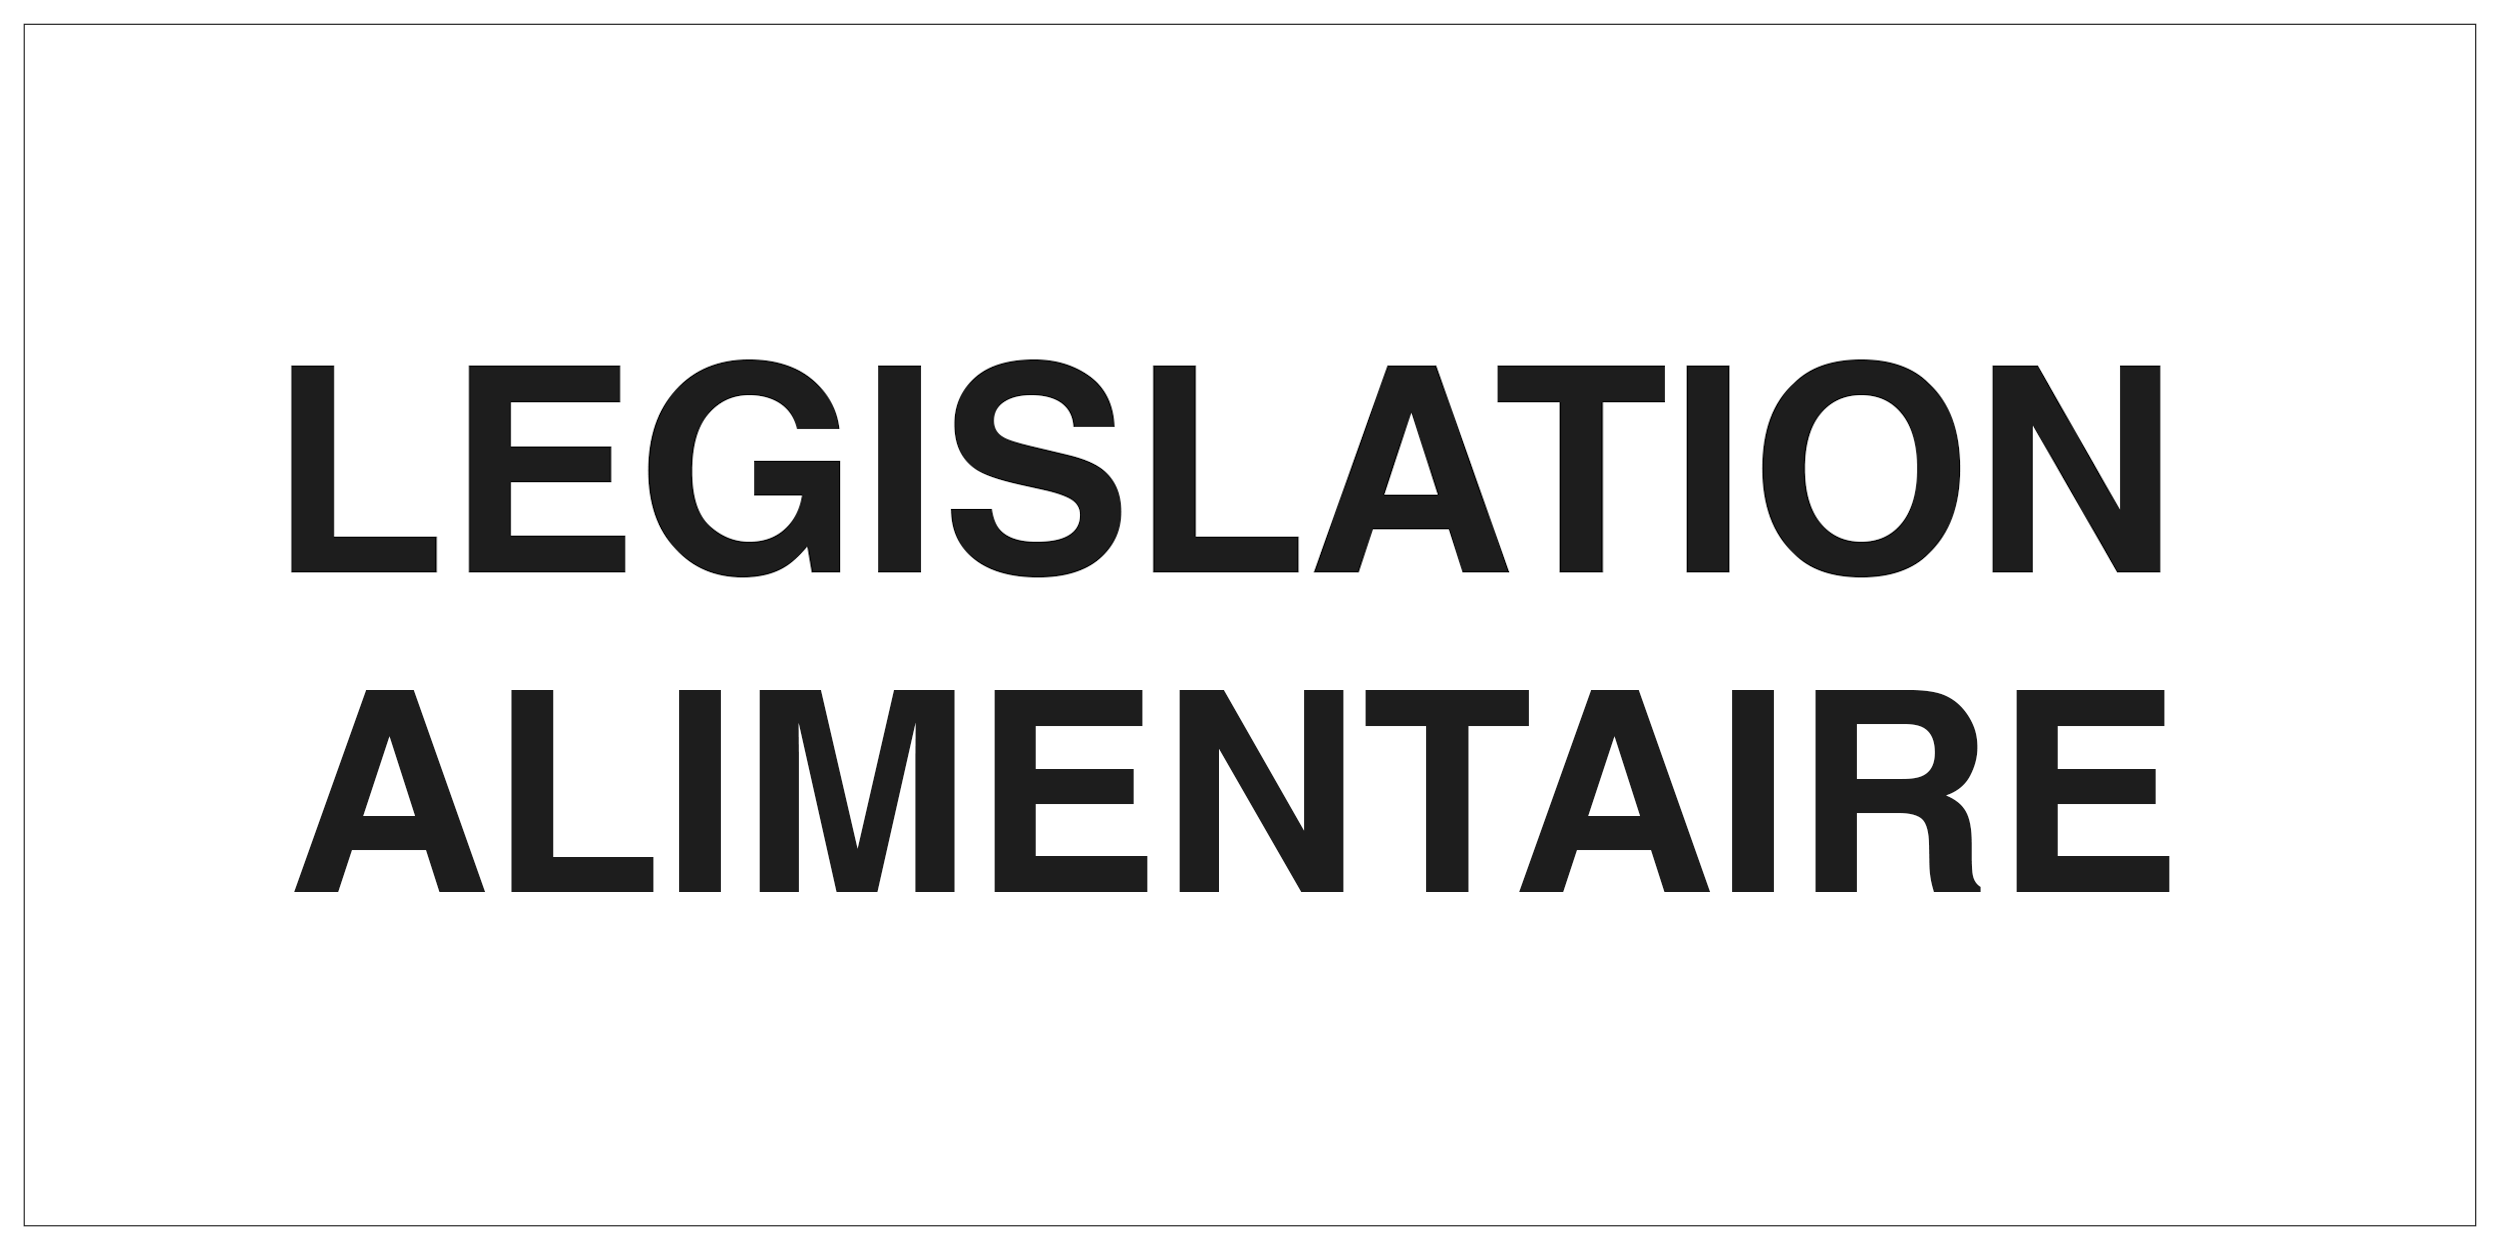 legislation alimentaire